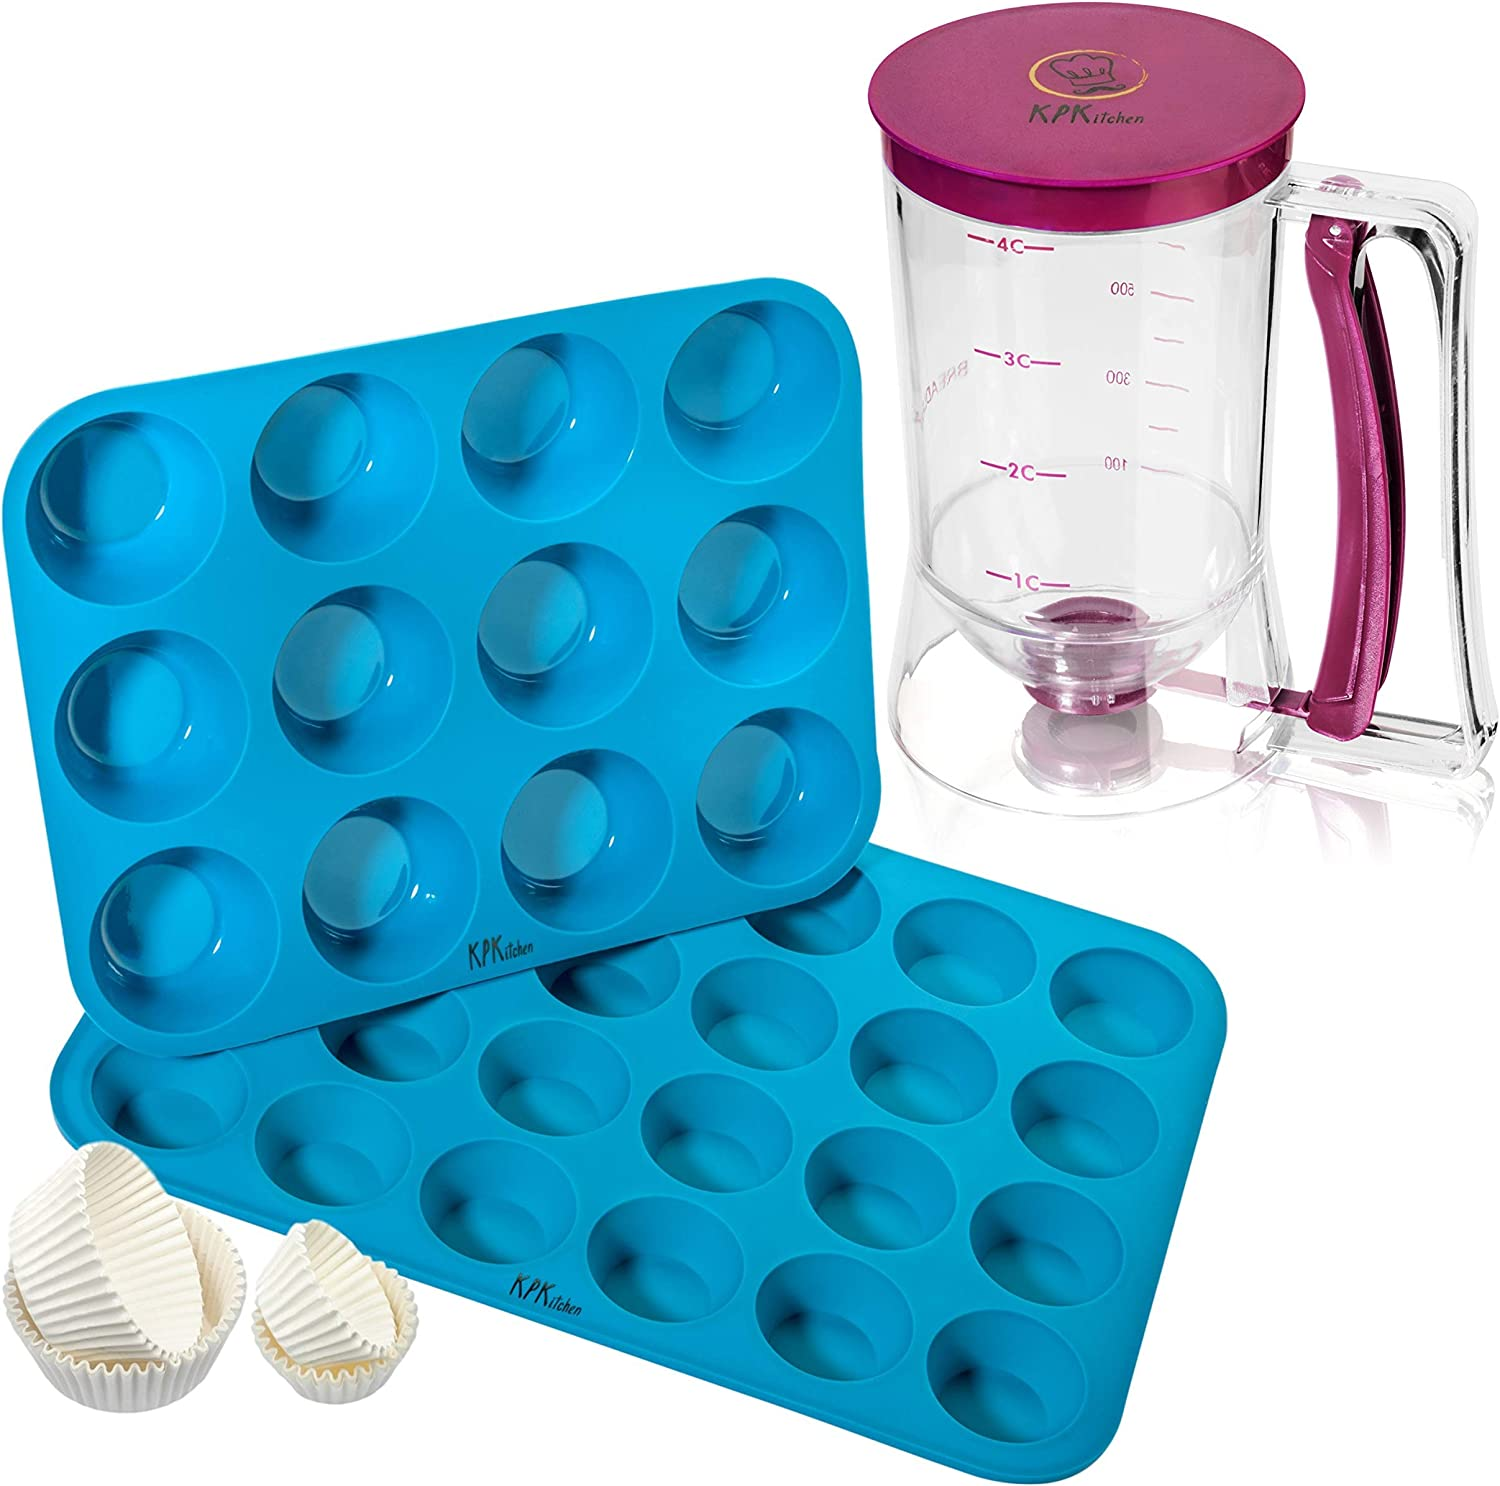 KPKitchen Pancake Batter Dispenser and Silicone Muffin Pans Set - Perfect Baking Tool for Cupcakes, Waffles, Crepes, Cake or Any Baked Goods - 12 & 24 Mini Pan Sizes - 100% Food Safe & BPA-free